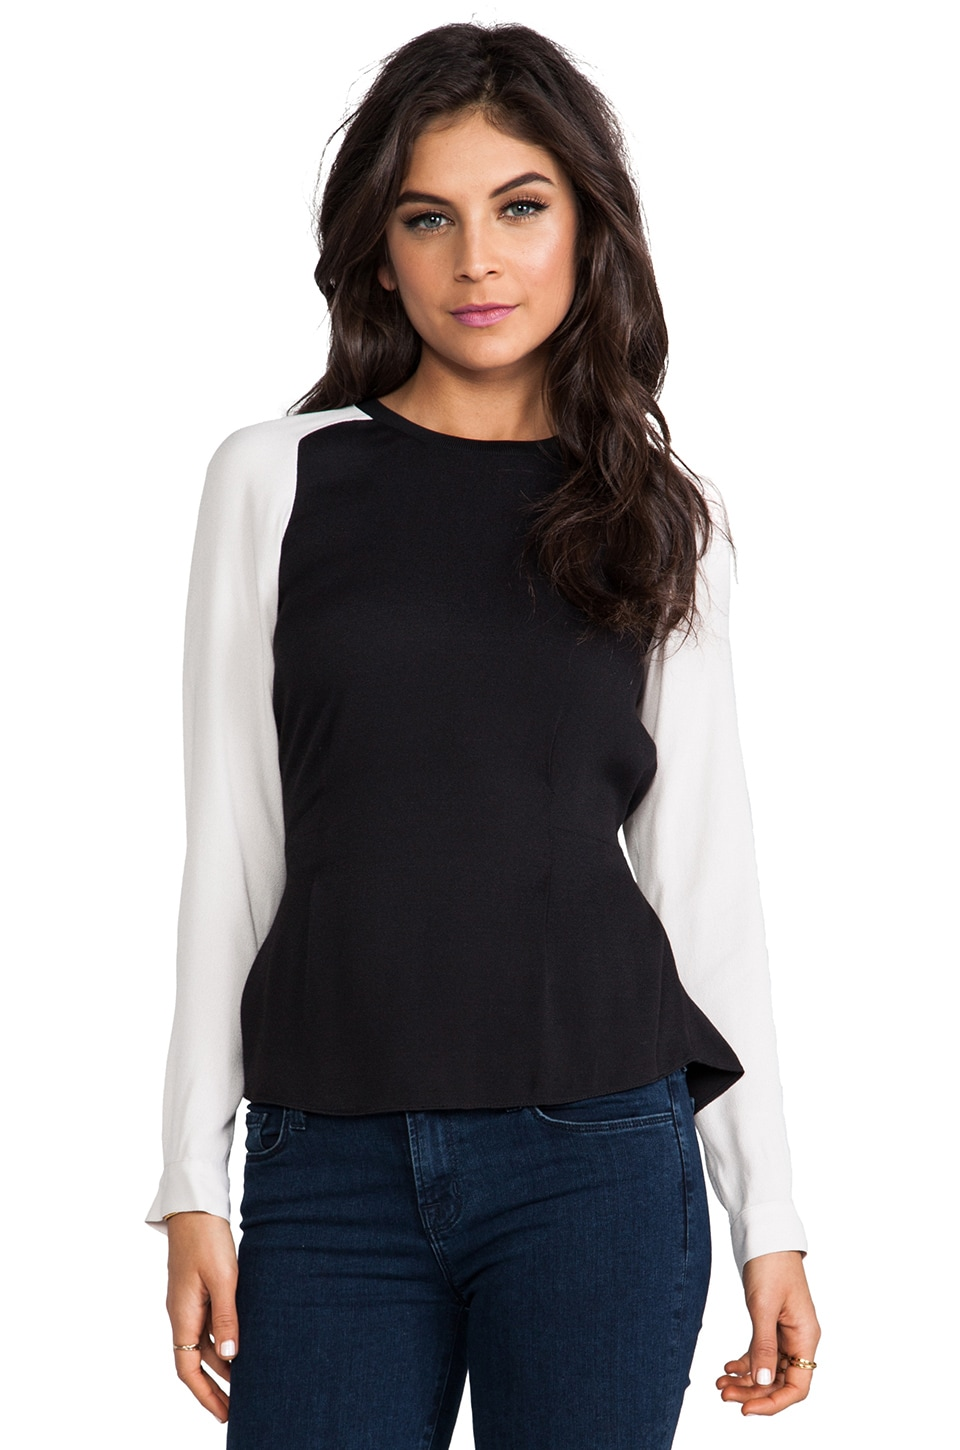 Rebecca Taylor Rib Trim Longsleeve in Black/Chalk